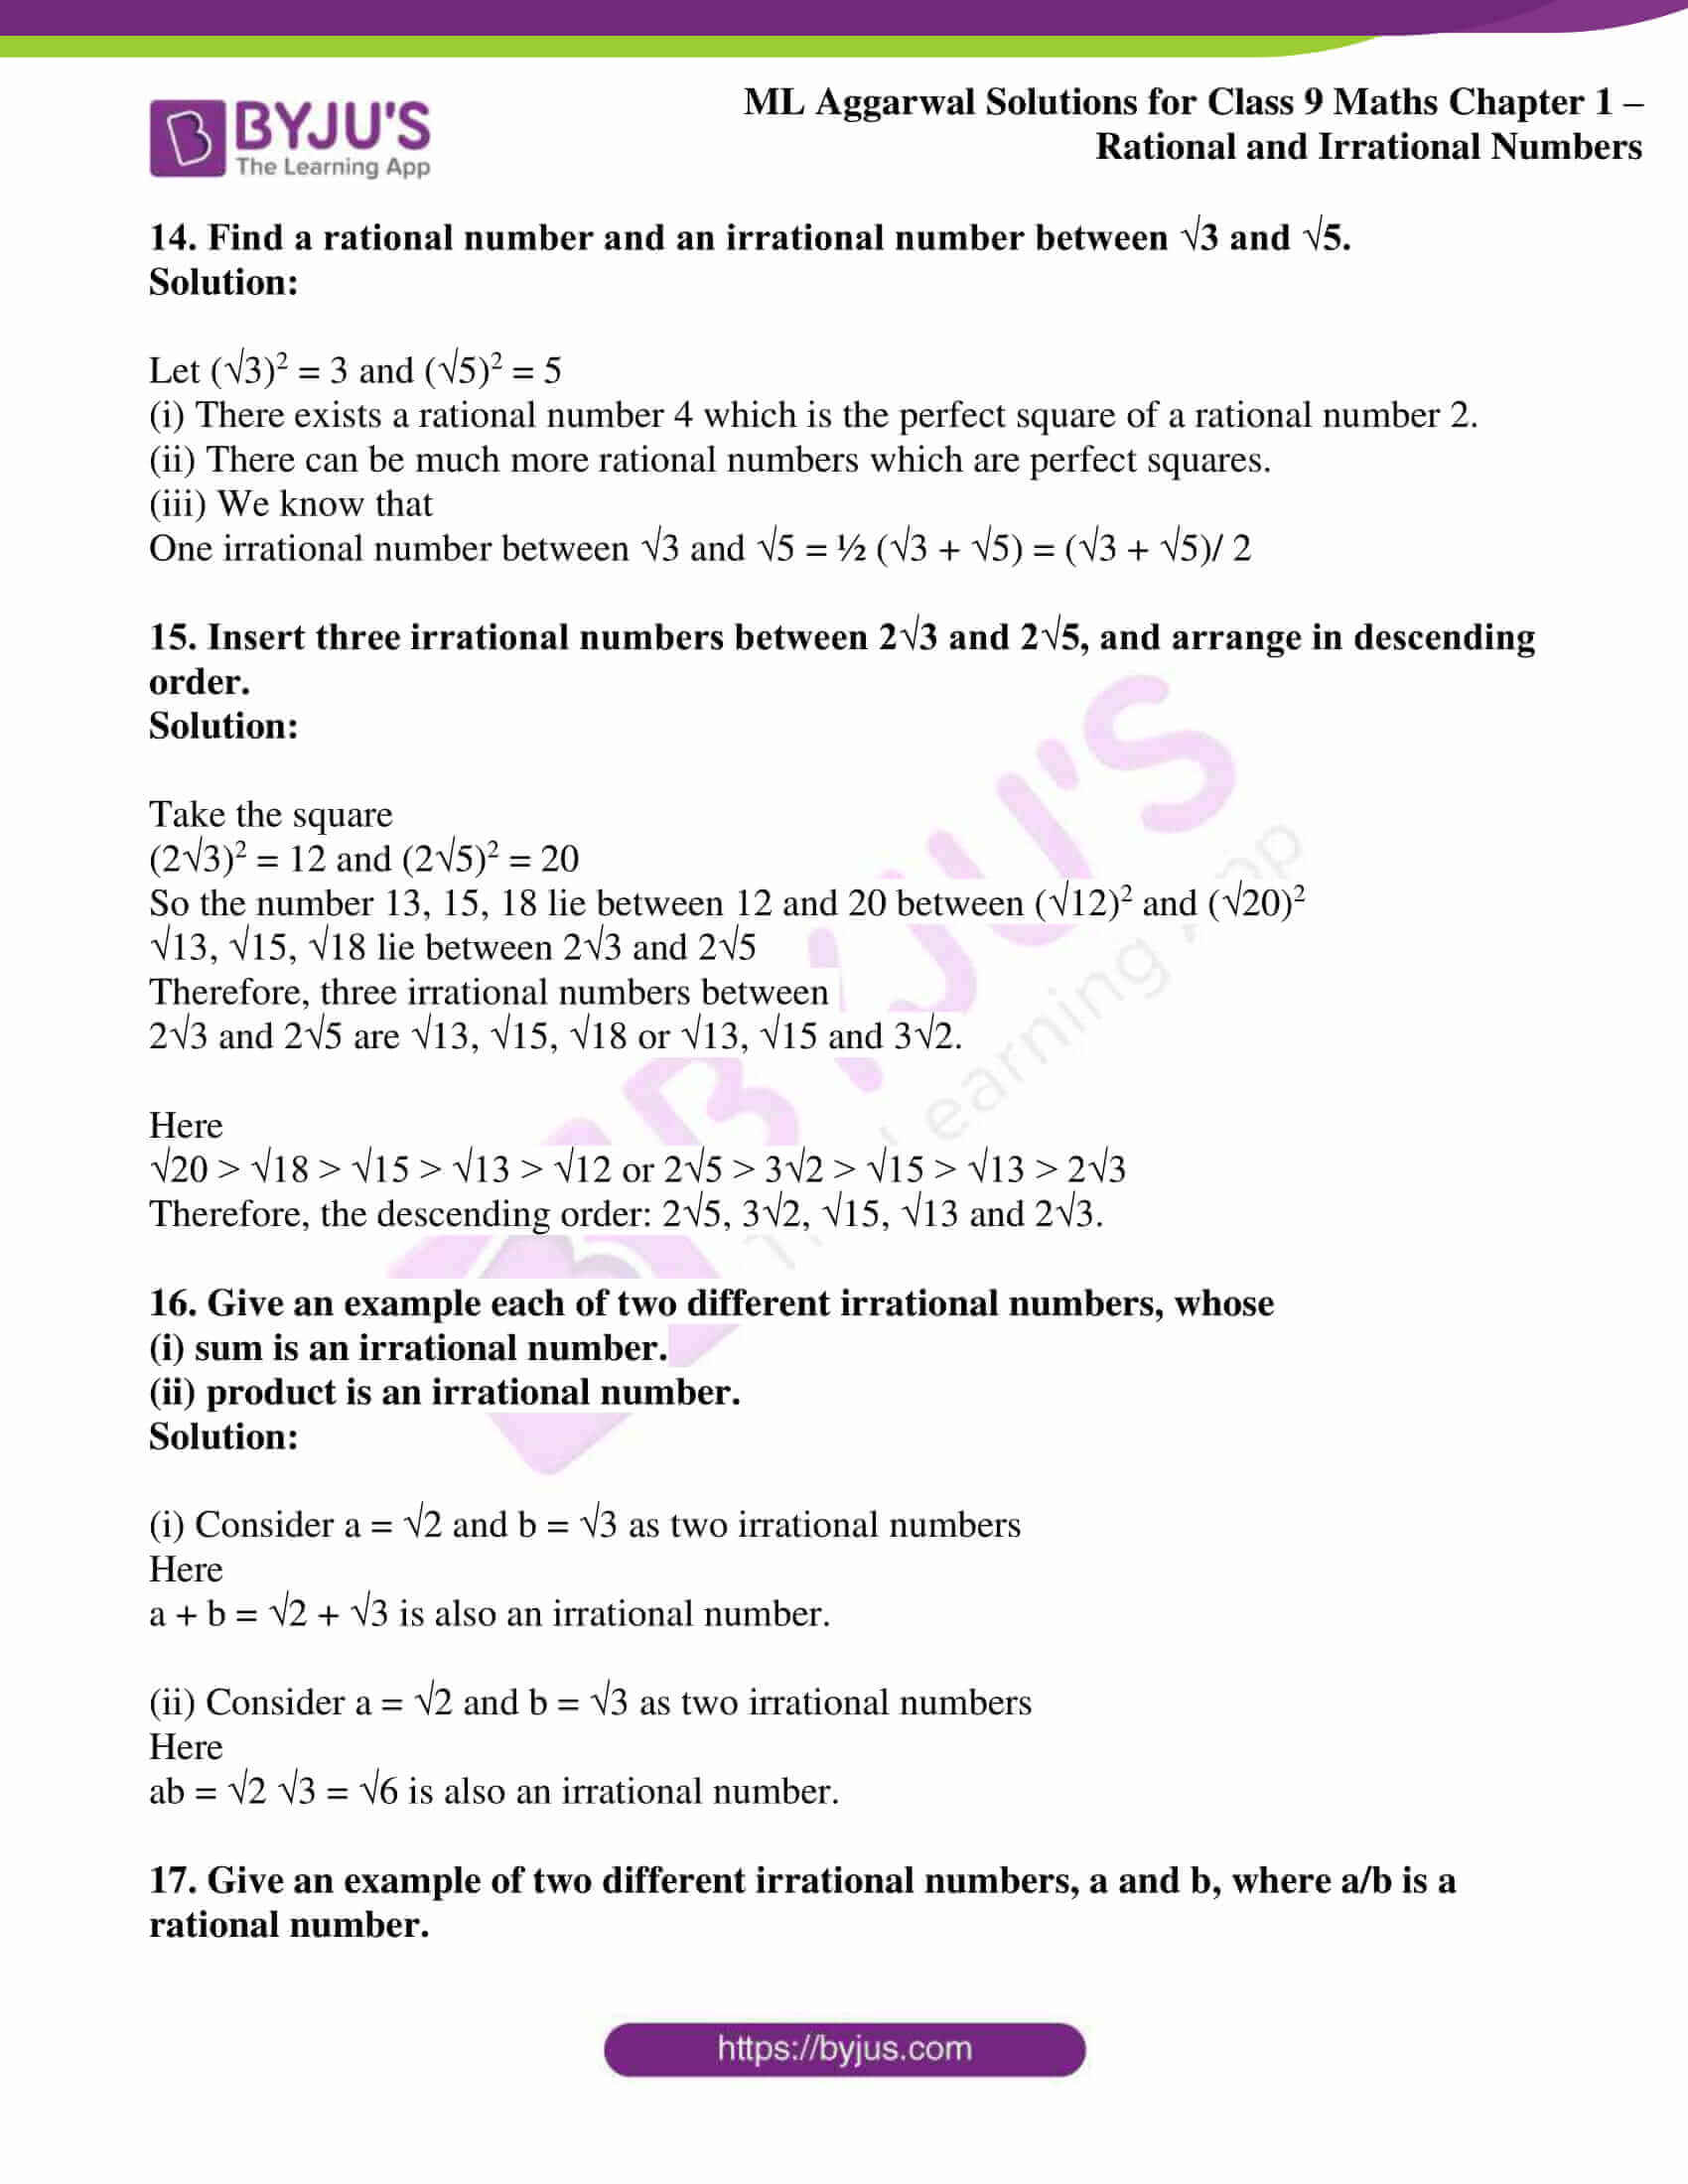 ml aggarwal solutions for class 9 maths chapter 1 79